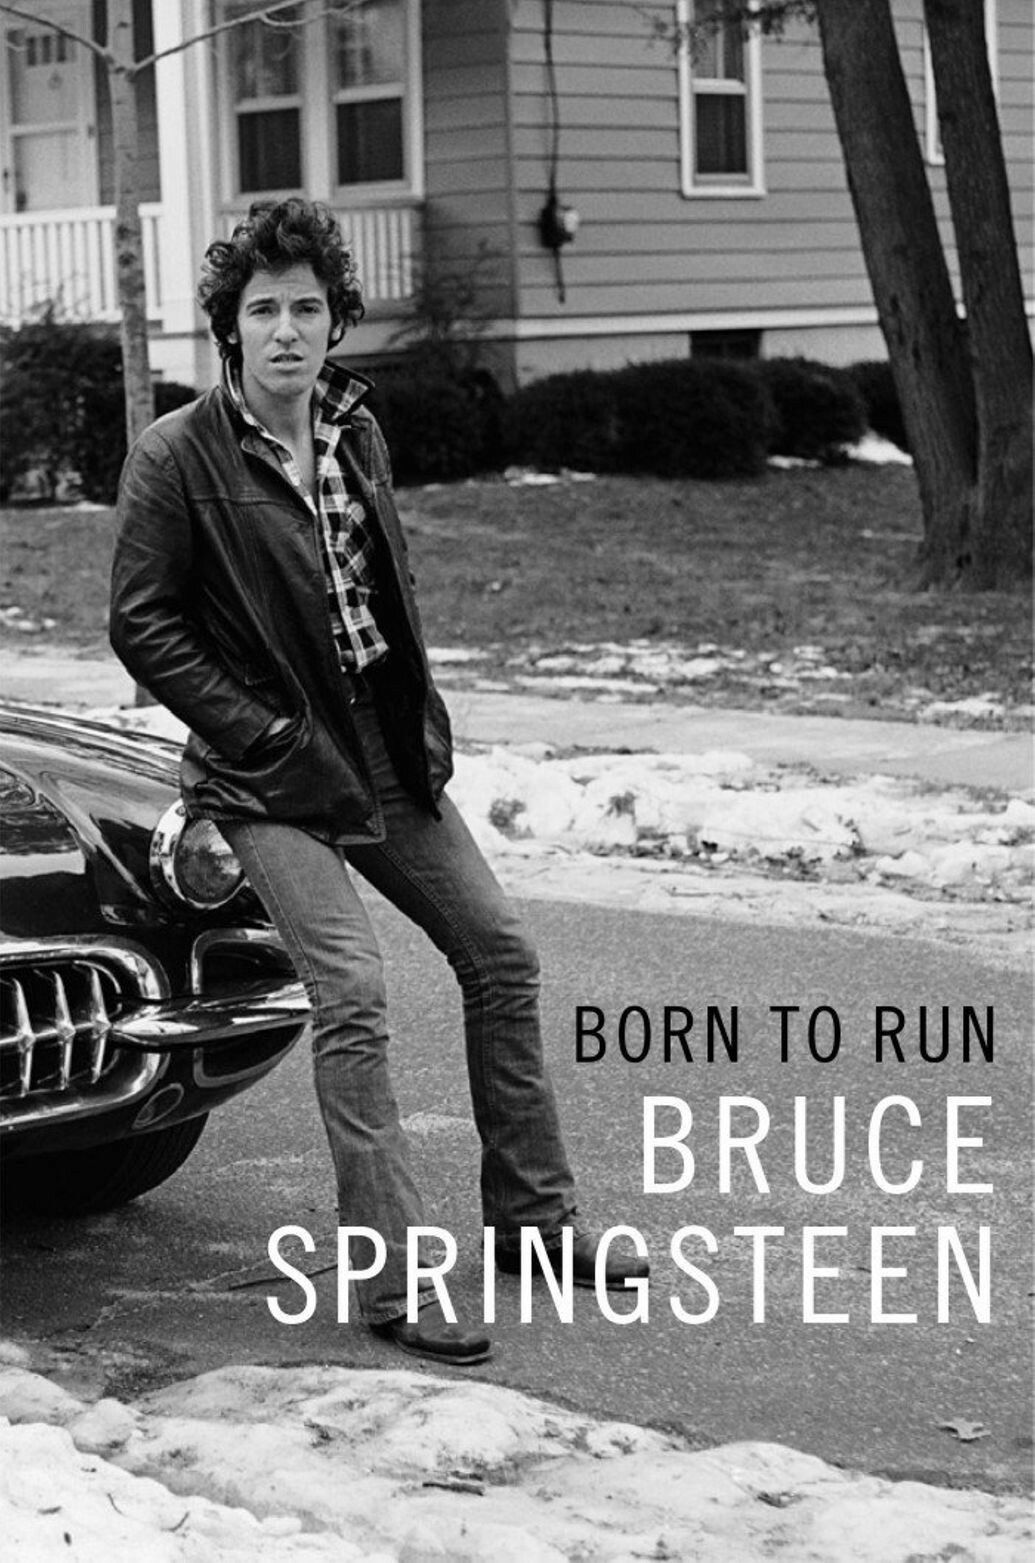 yes . today Born to run arrived . Bruce springsteen